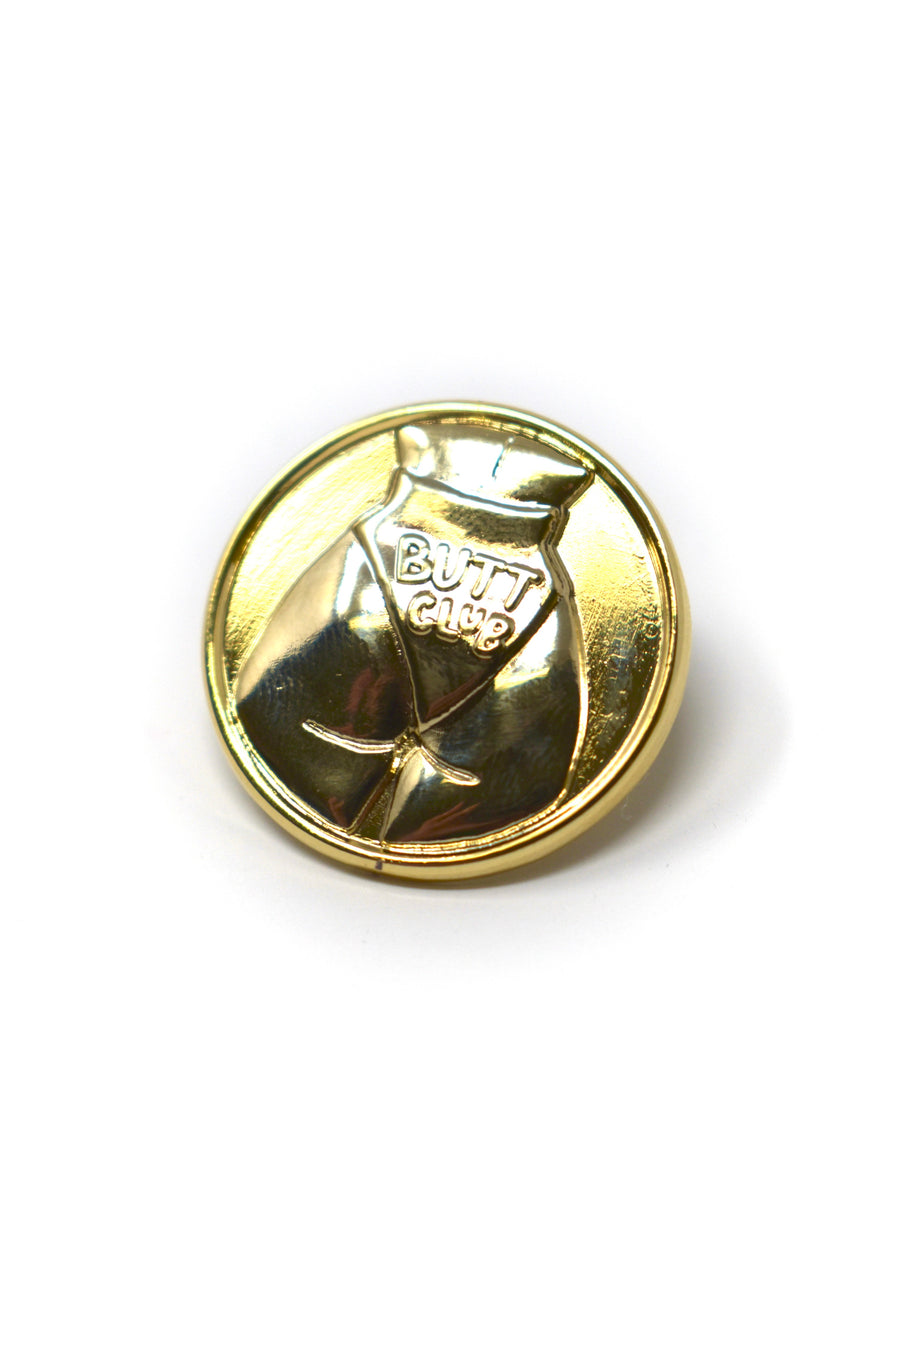 Butt Club 14K gold plated Pin